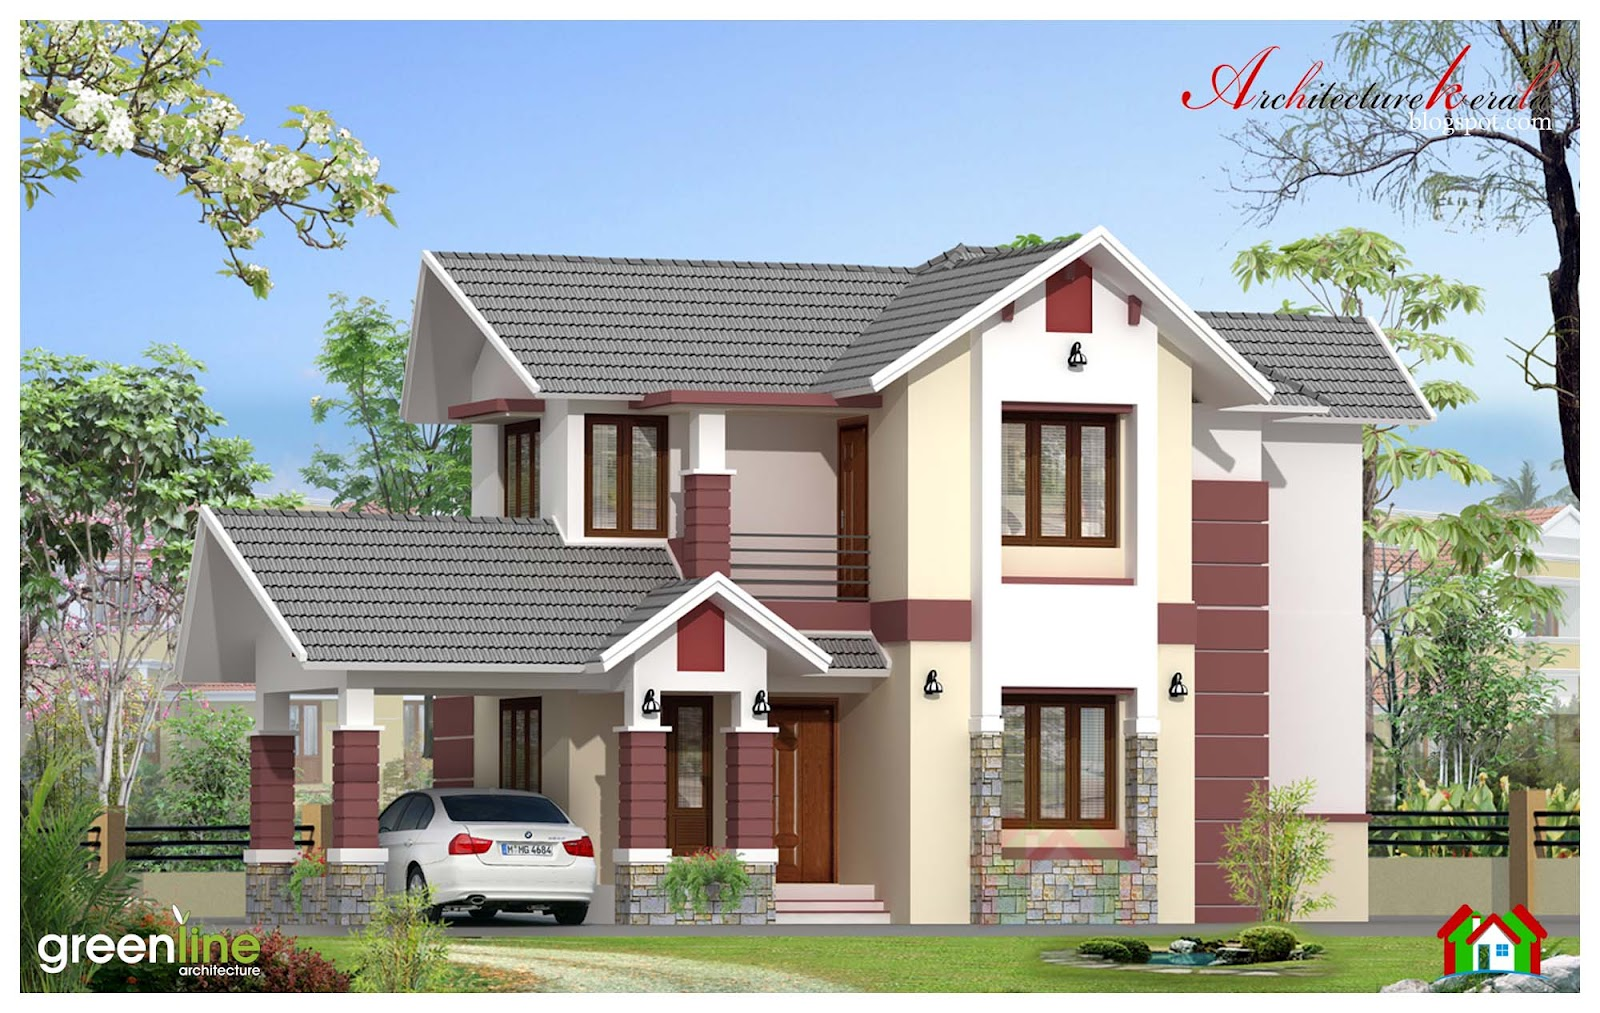 3 bhk kerala home design in 1680 sq ft architecture kerala for Home designs kashmir